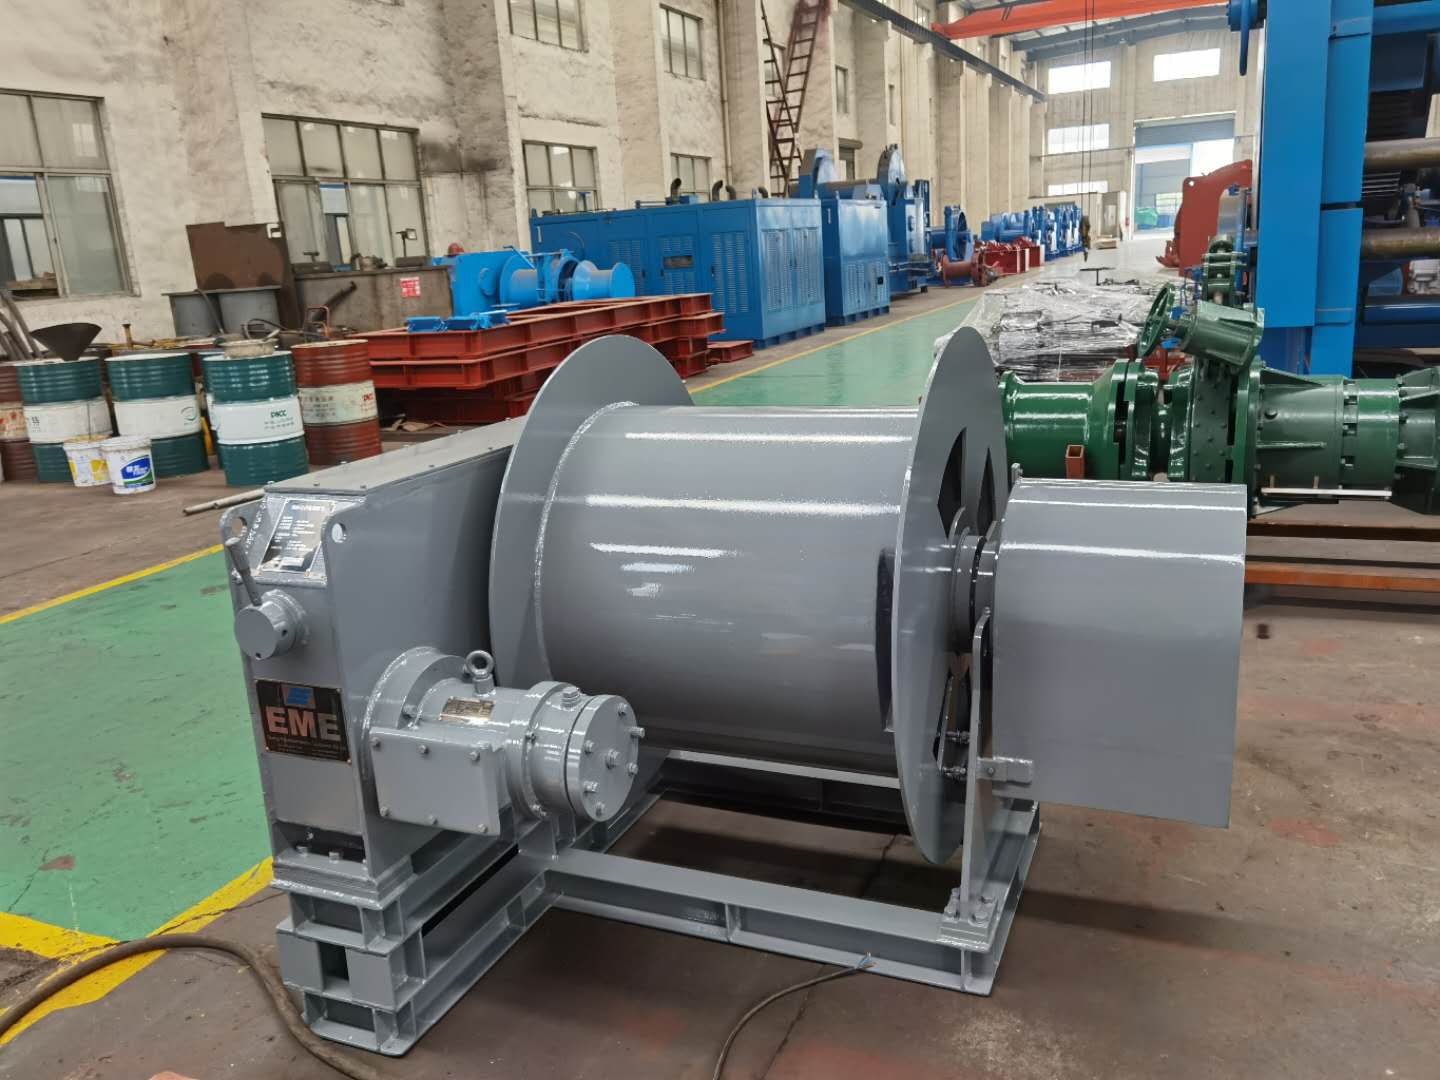 6kN Electric cable winch